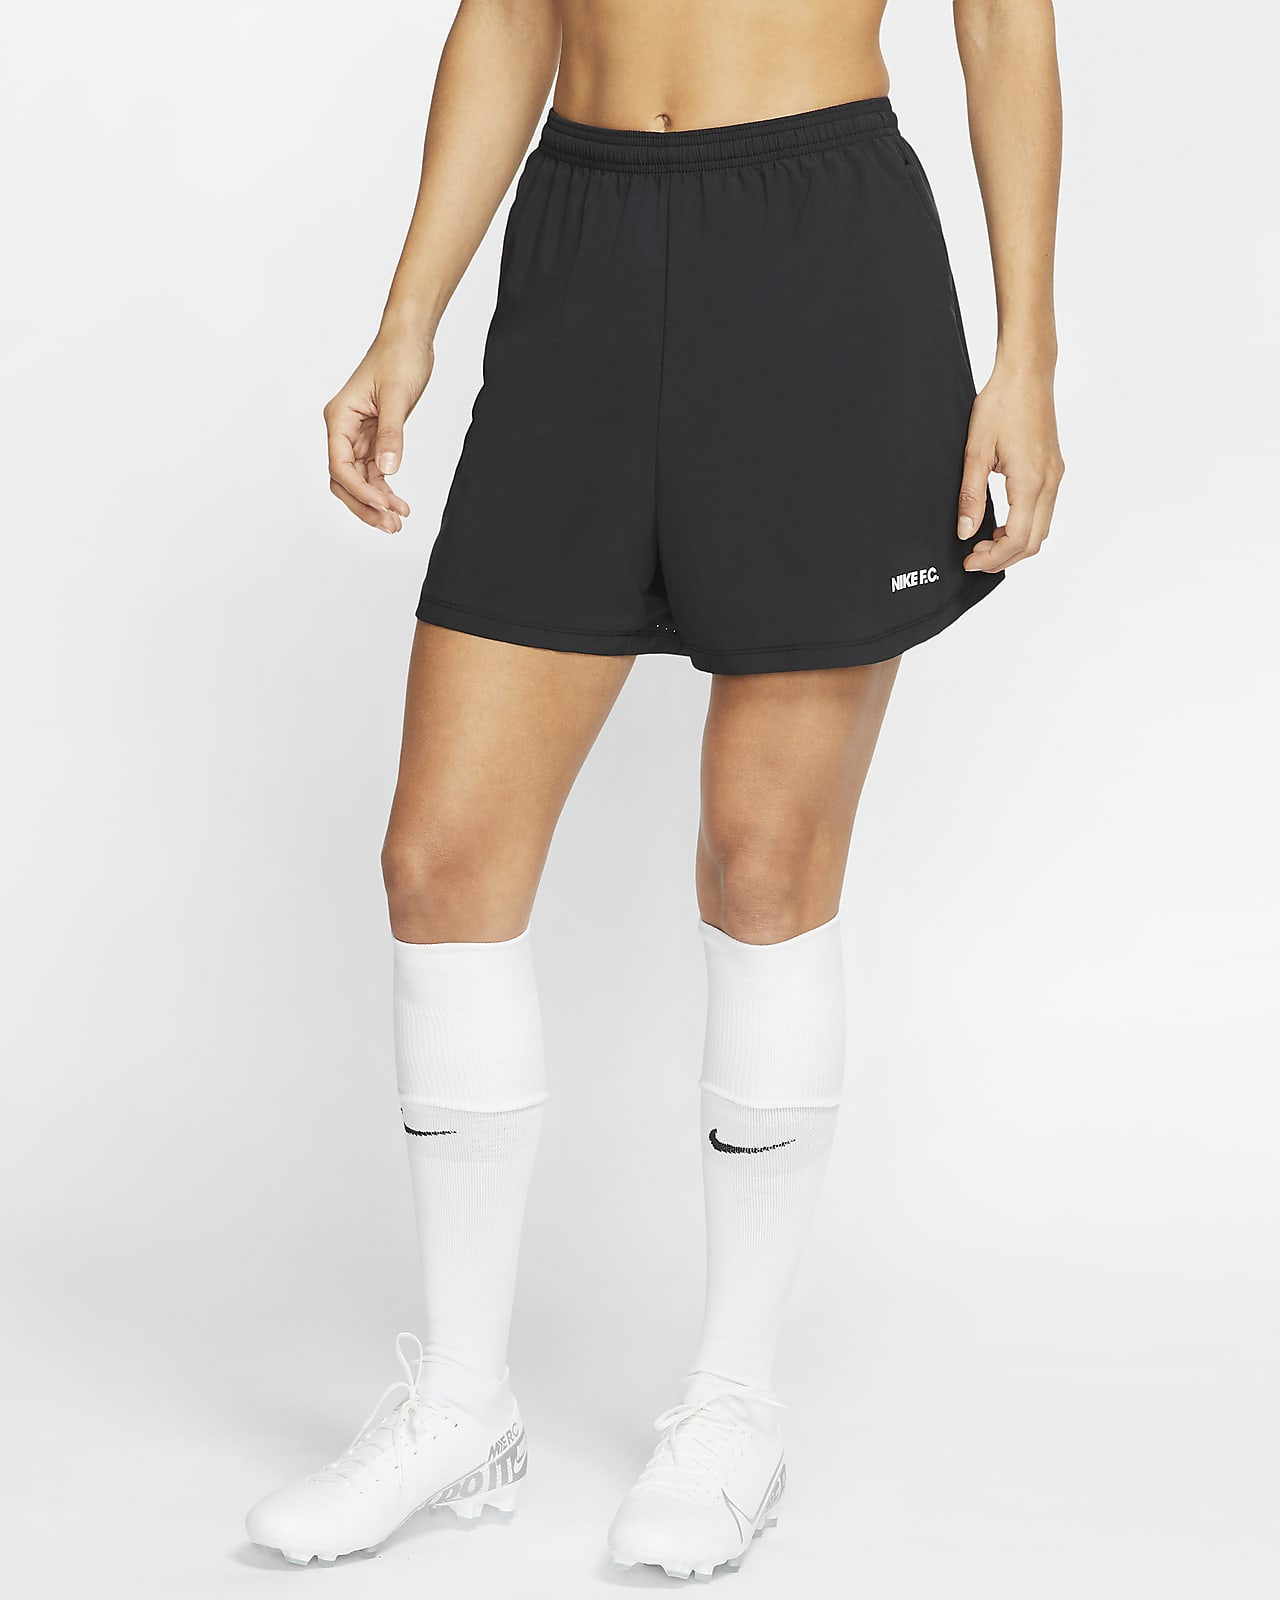 Nike F.C. Women's Football Shorts